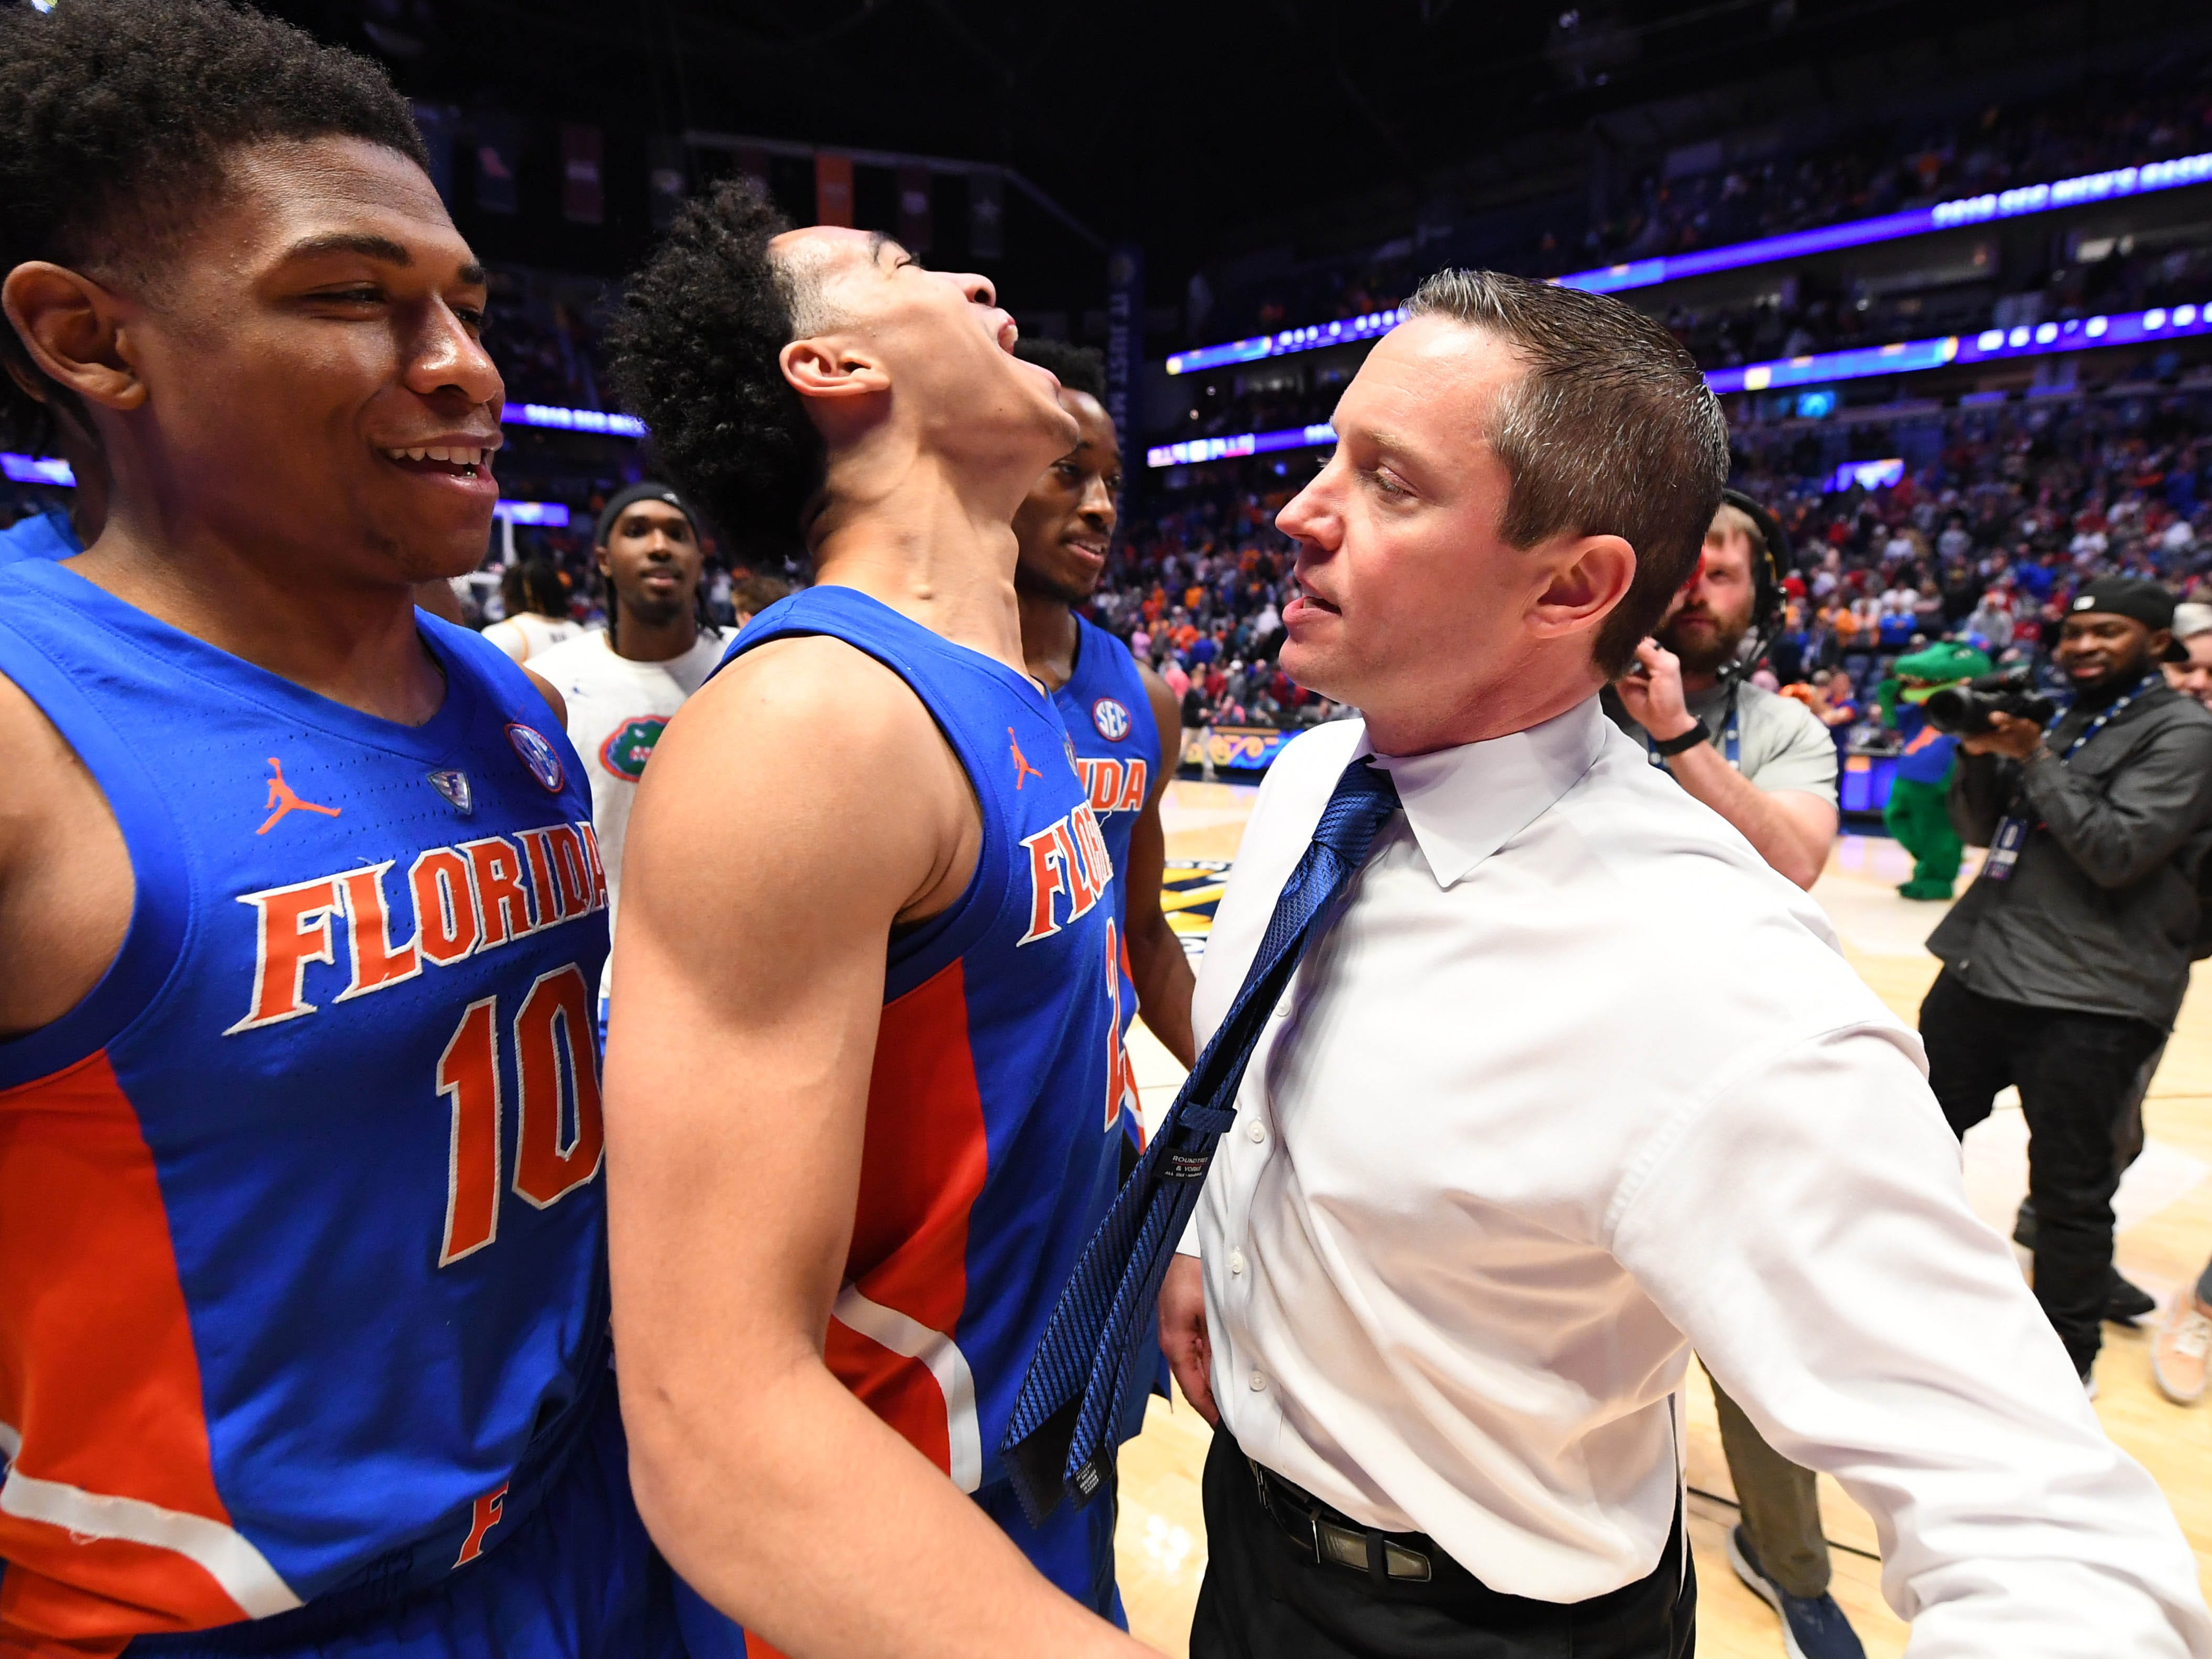 Mar 15, 2019; Nashville, TN, USA; Florida Gators guard Andrew Nembhard (2) celebrates with Florida Gators head coach Mike White after scoring the game winning basket against the LSU Tigers in the SEC conference tournament at Bridgestone Arena. Mandatory Credit: Christopher Hanewinckel-USA TODAY Sports